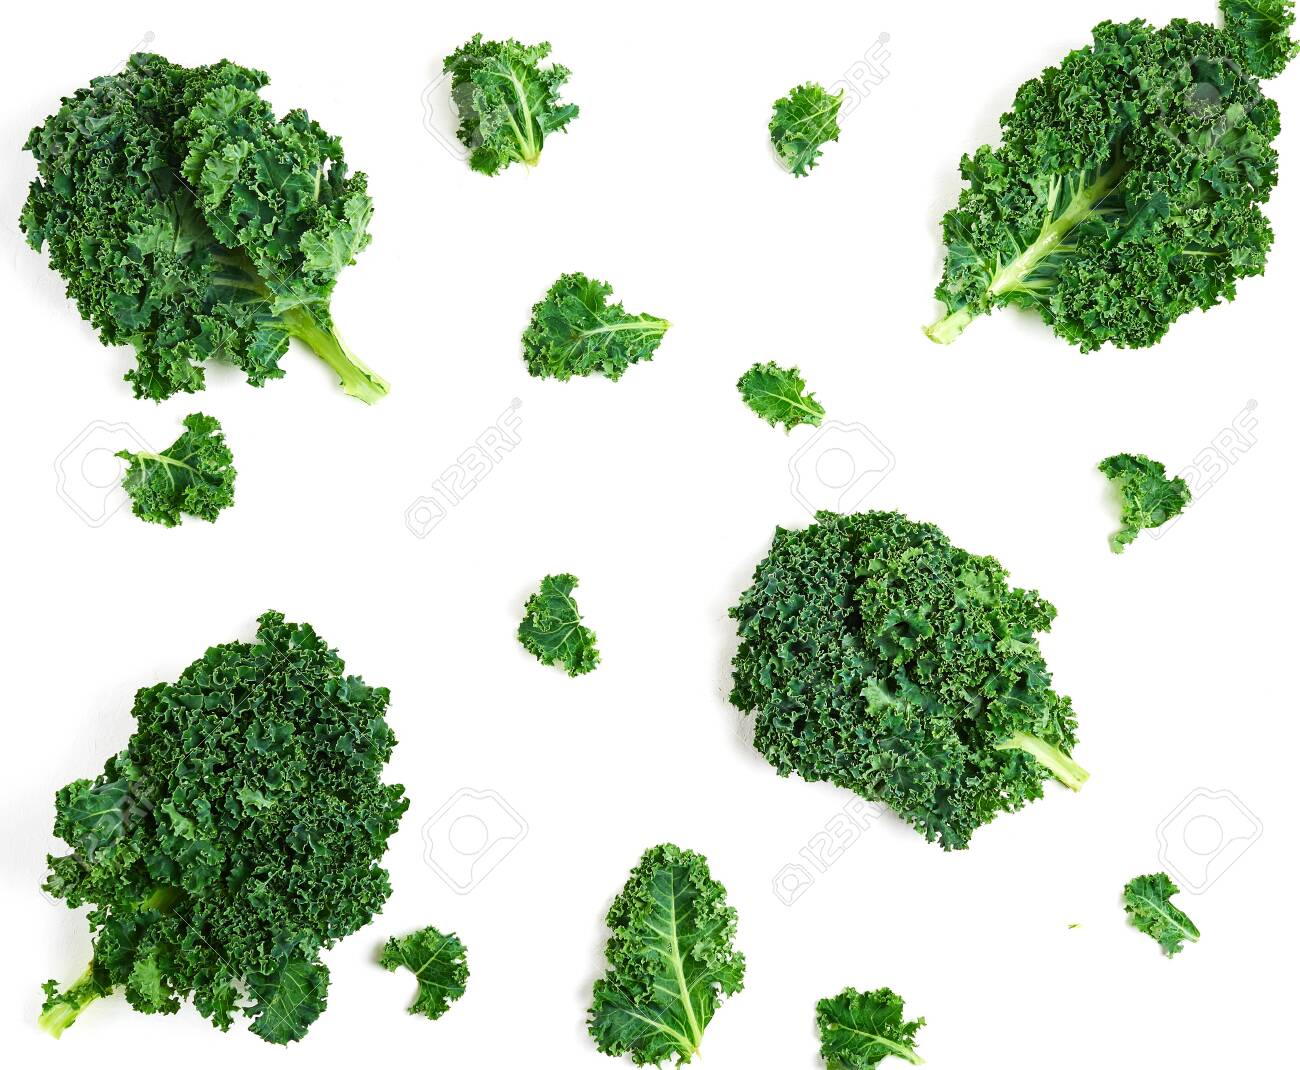 Creative layout made of kale. - 129843118